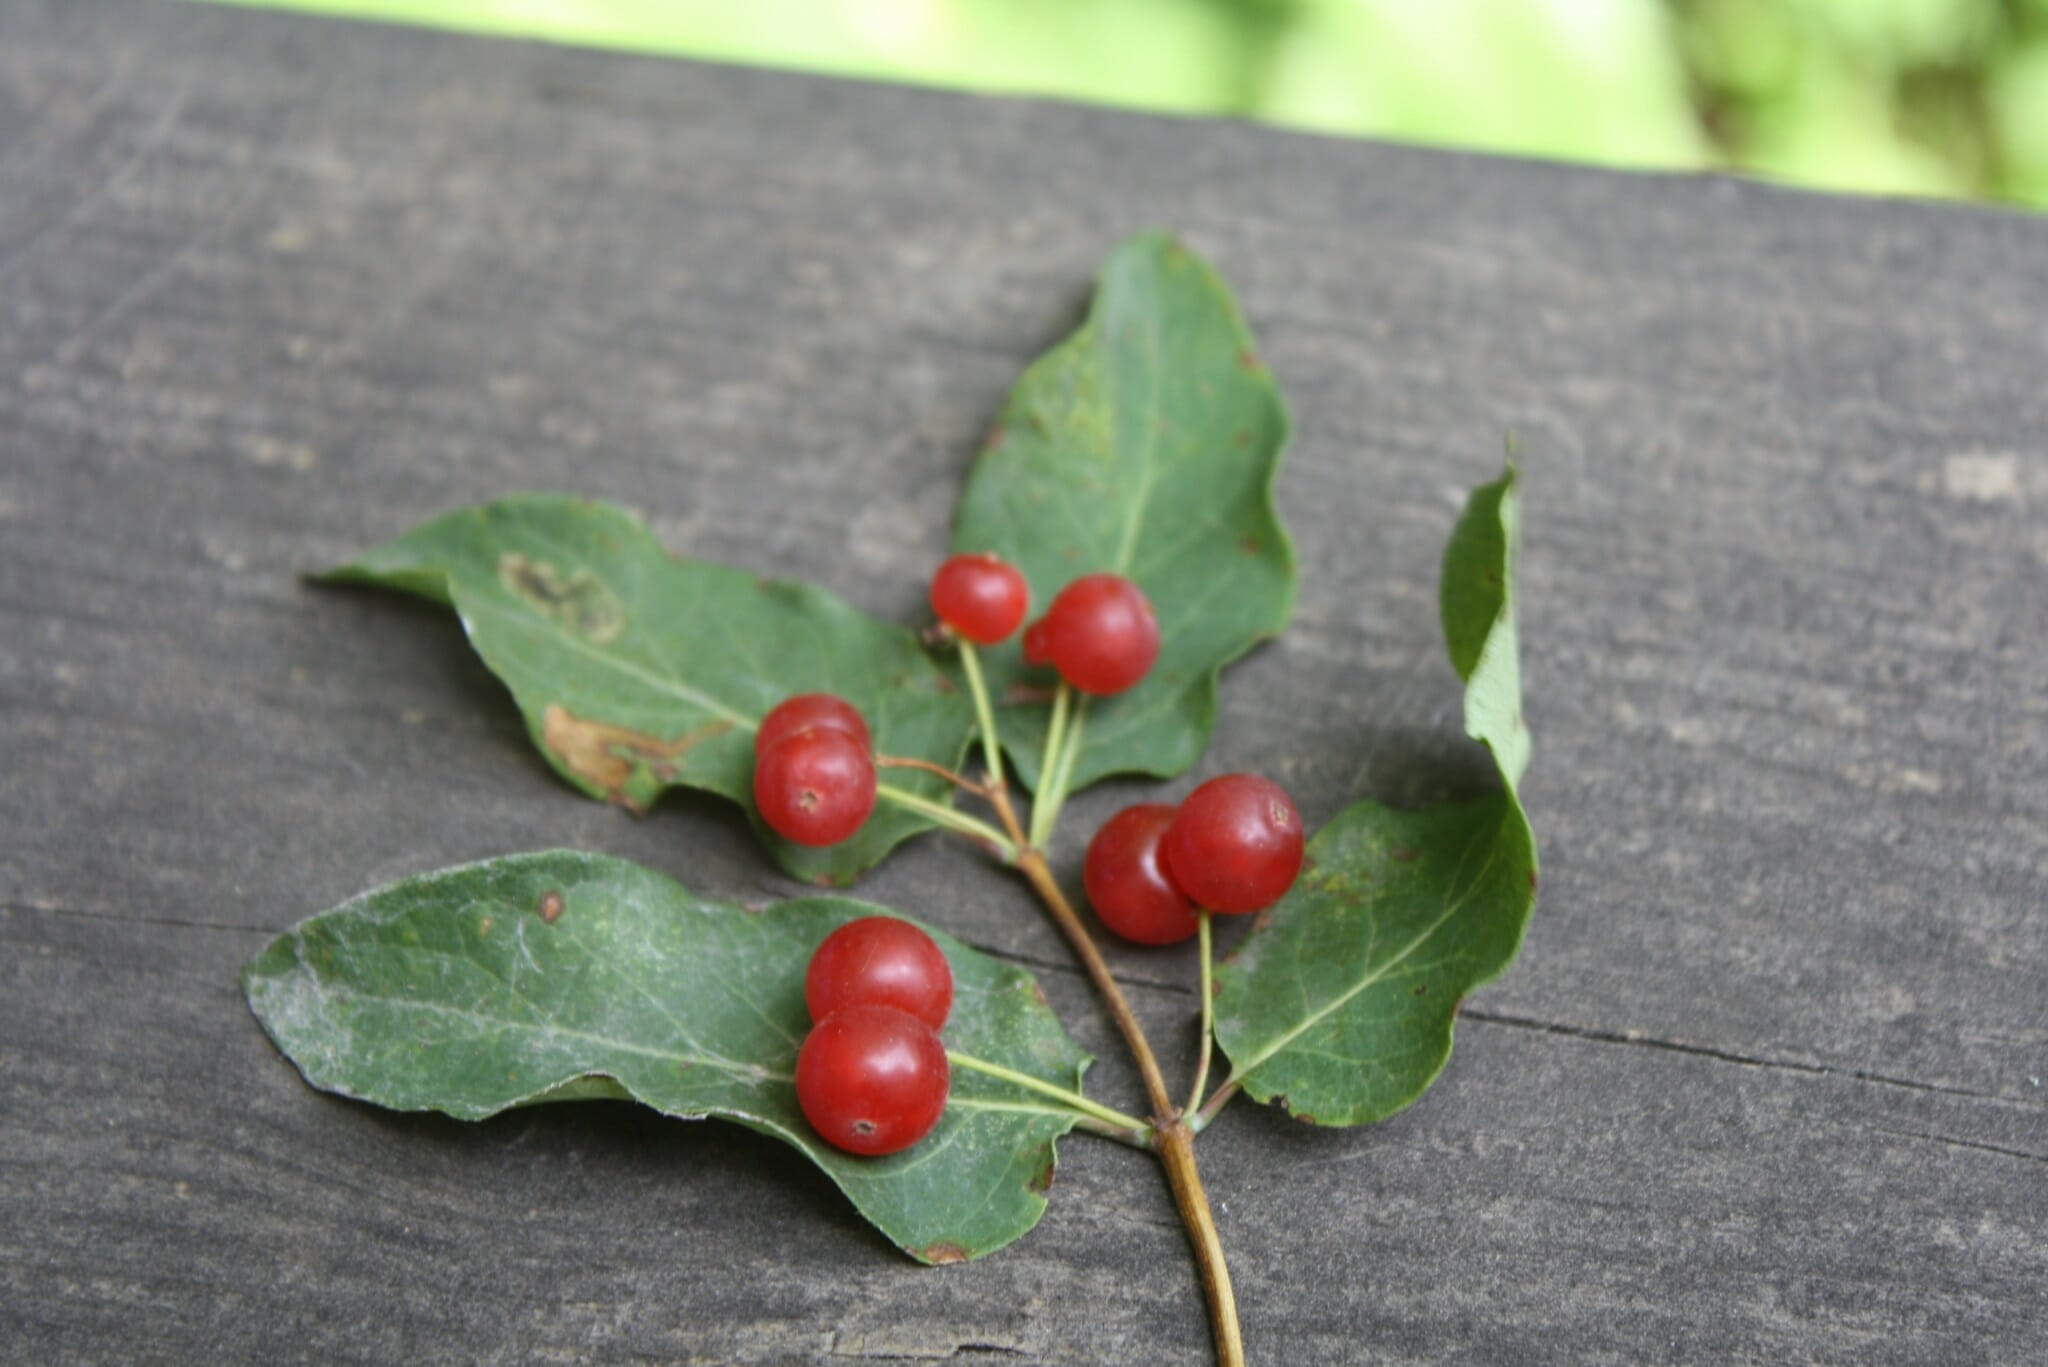 Red Berries - Edible or Not Edible?